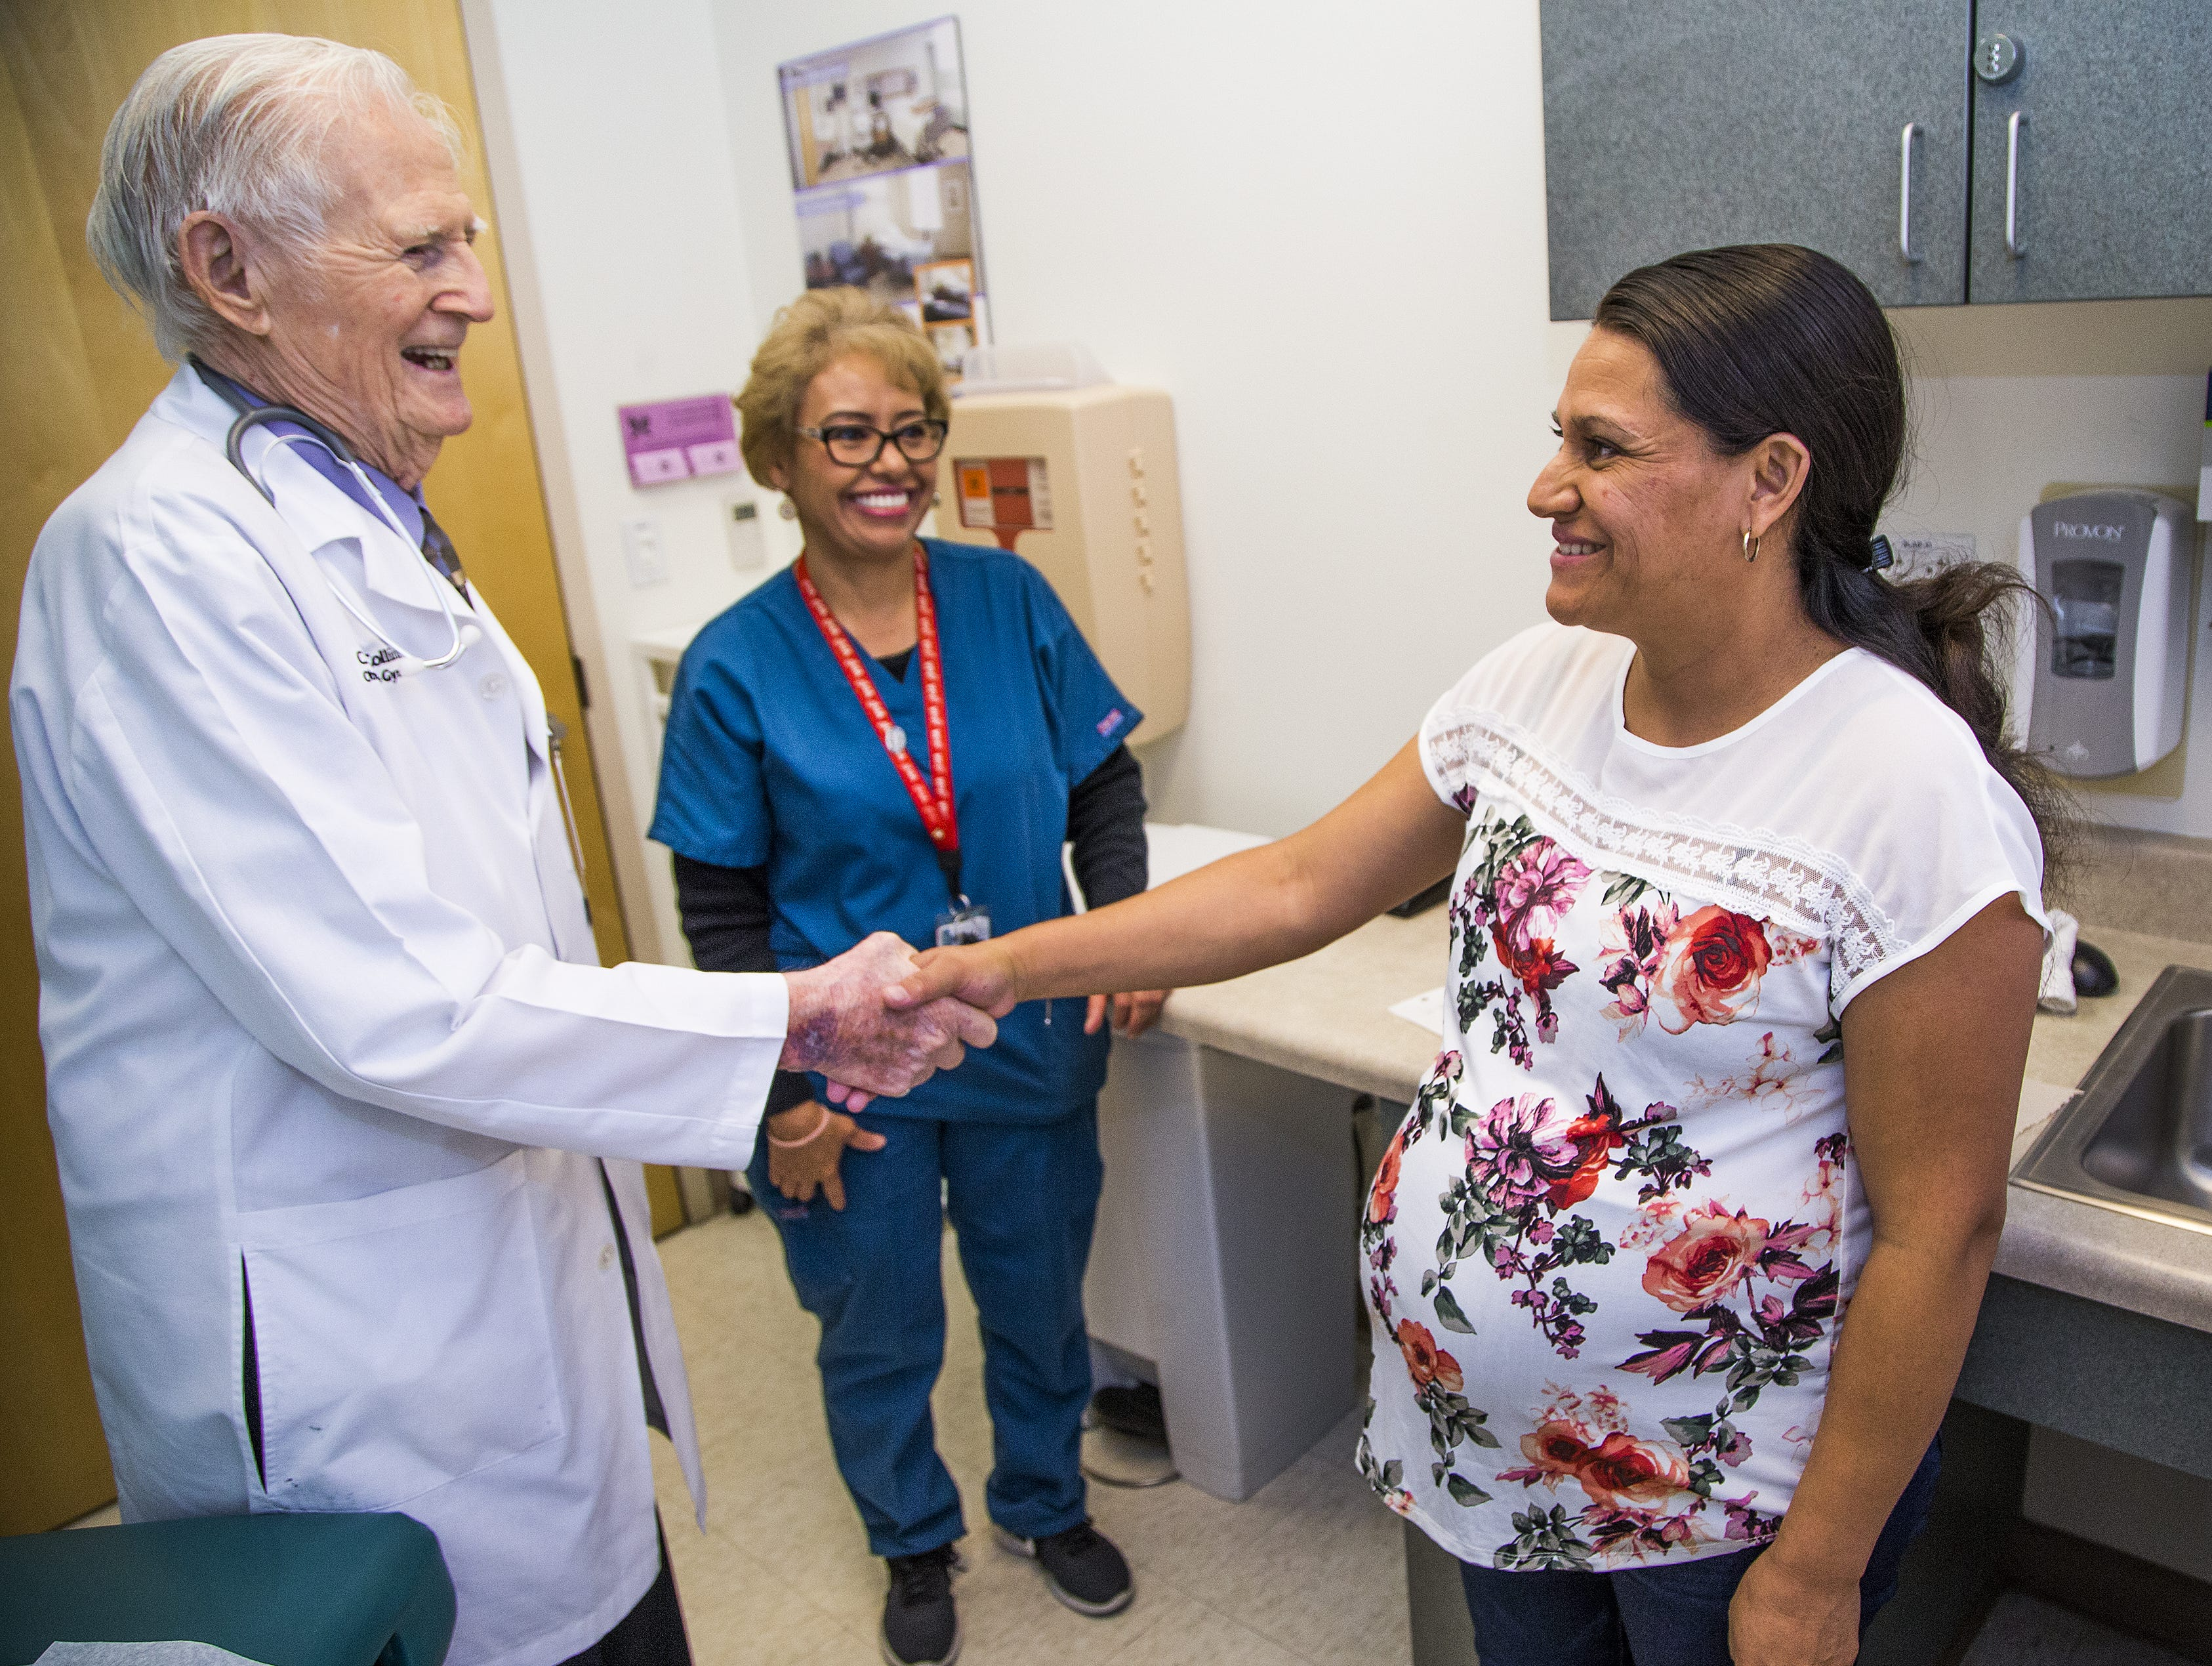 Dr. C. Dale Collins, 98, is finally retiring. Flanked by medical assistant Isabel Gonzalez, he says goodbye to patient Maria Bravo on Aug. 24, 2018.